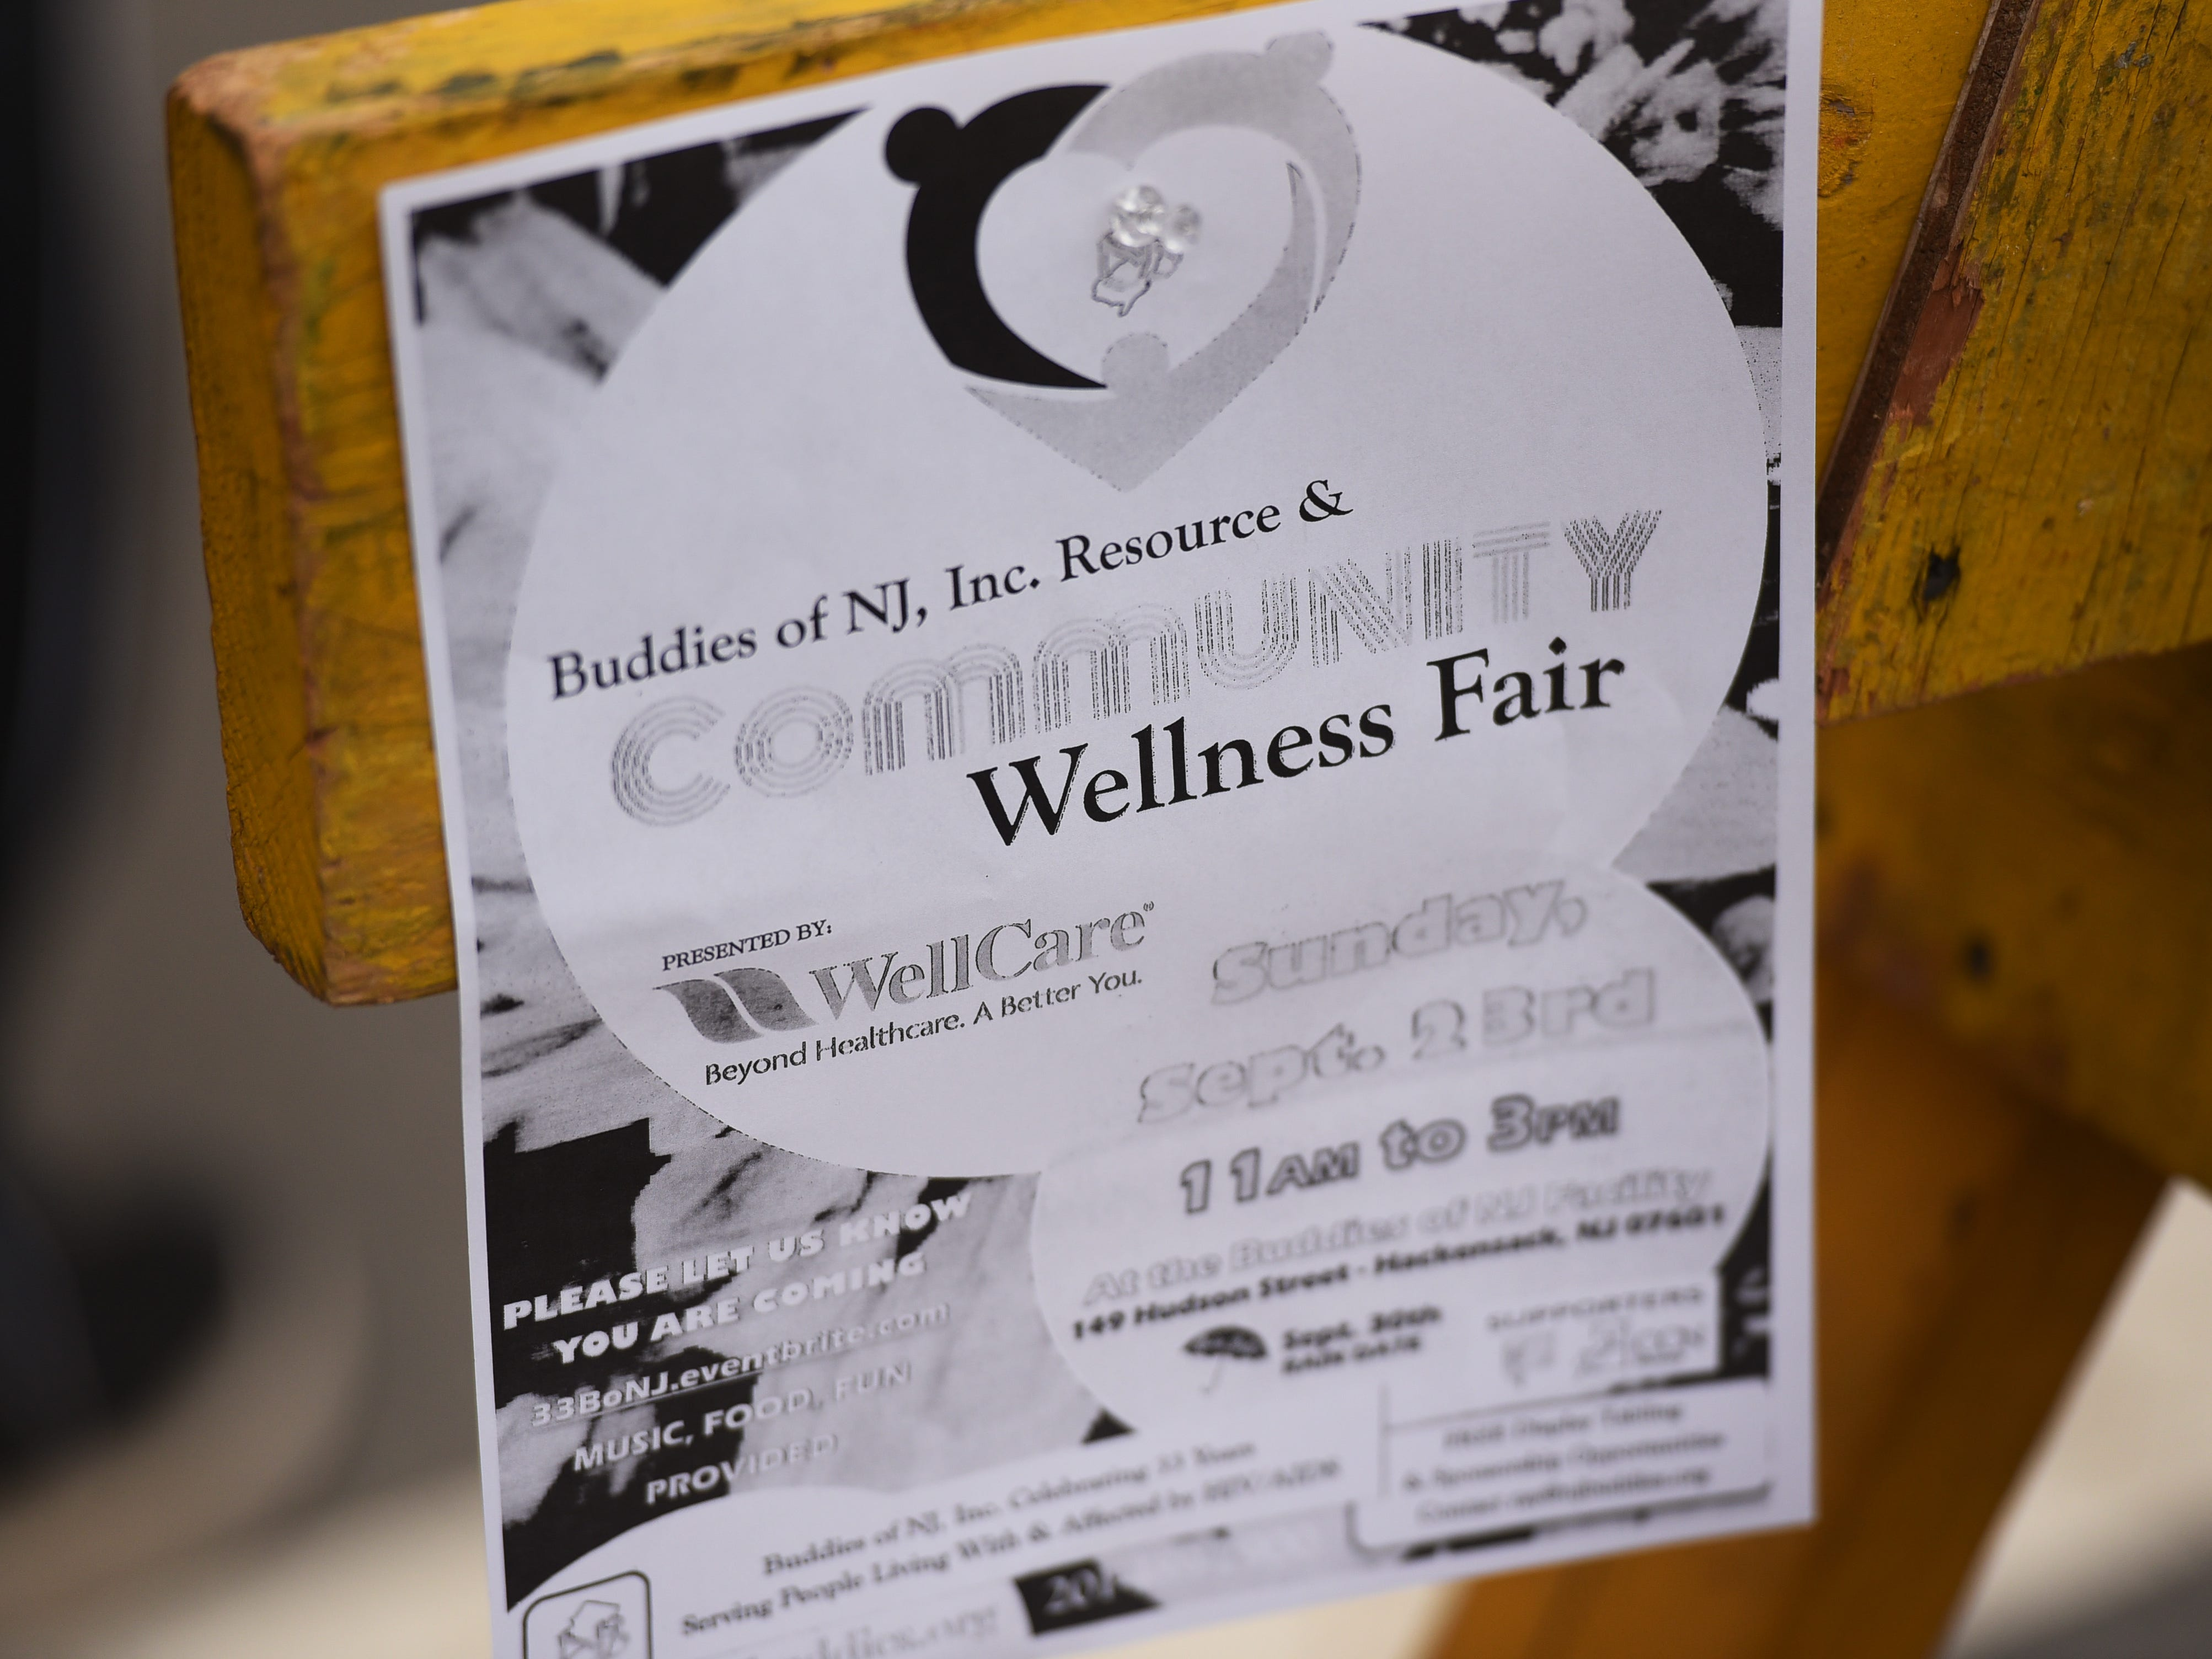 A flyer of the event is seen during the first annual Resource and Community Wellness Fair held by Buddies of NJ in Hackensack on 0923/18. The Buddies support people living with or affected by HIV/AIDS